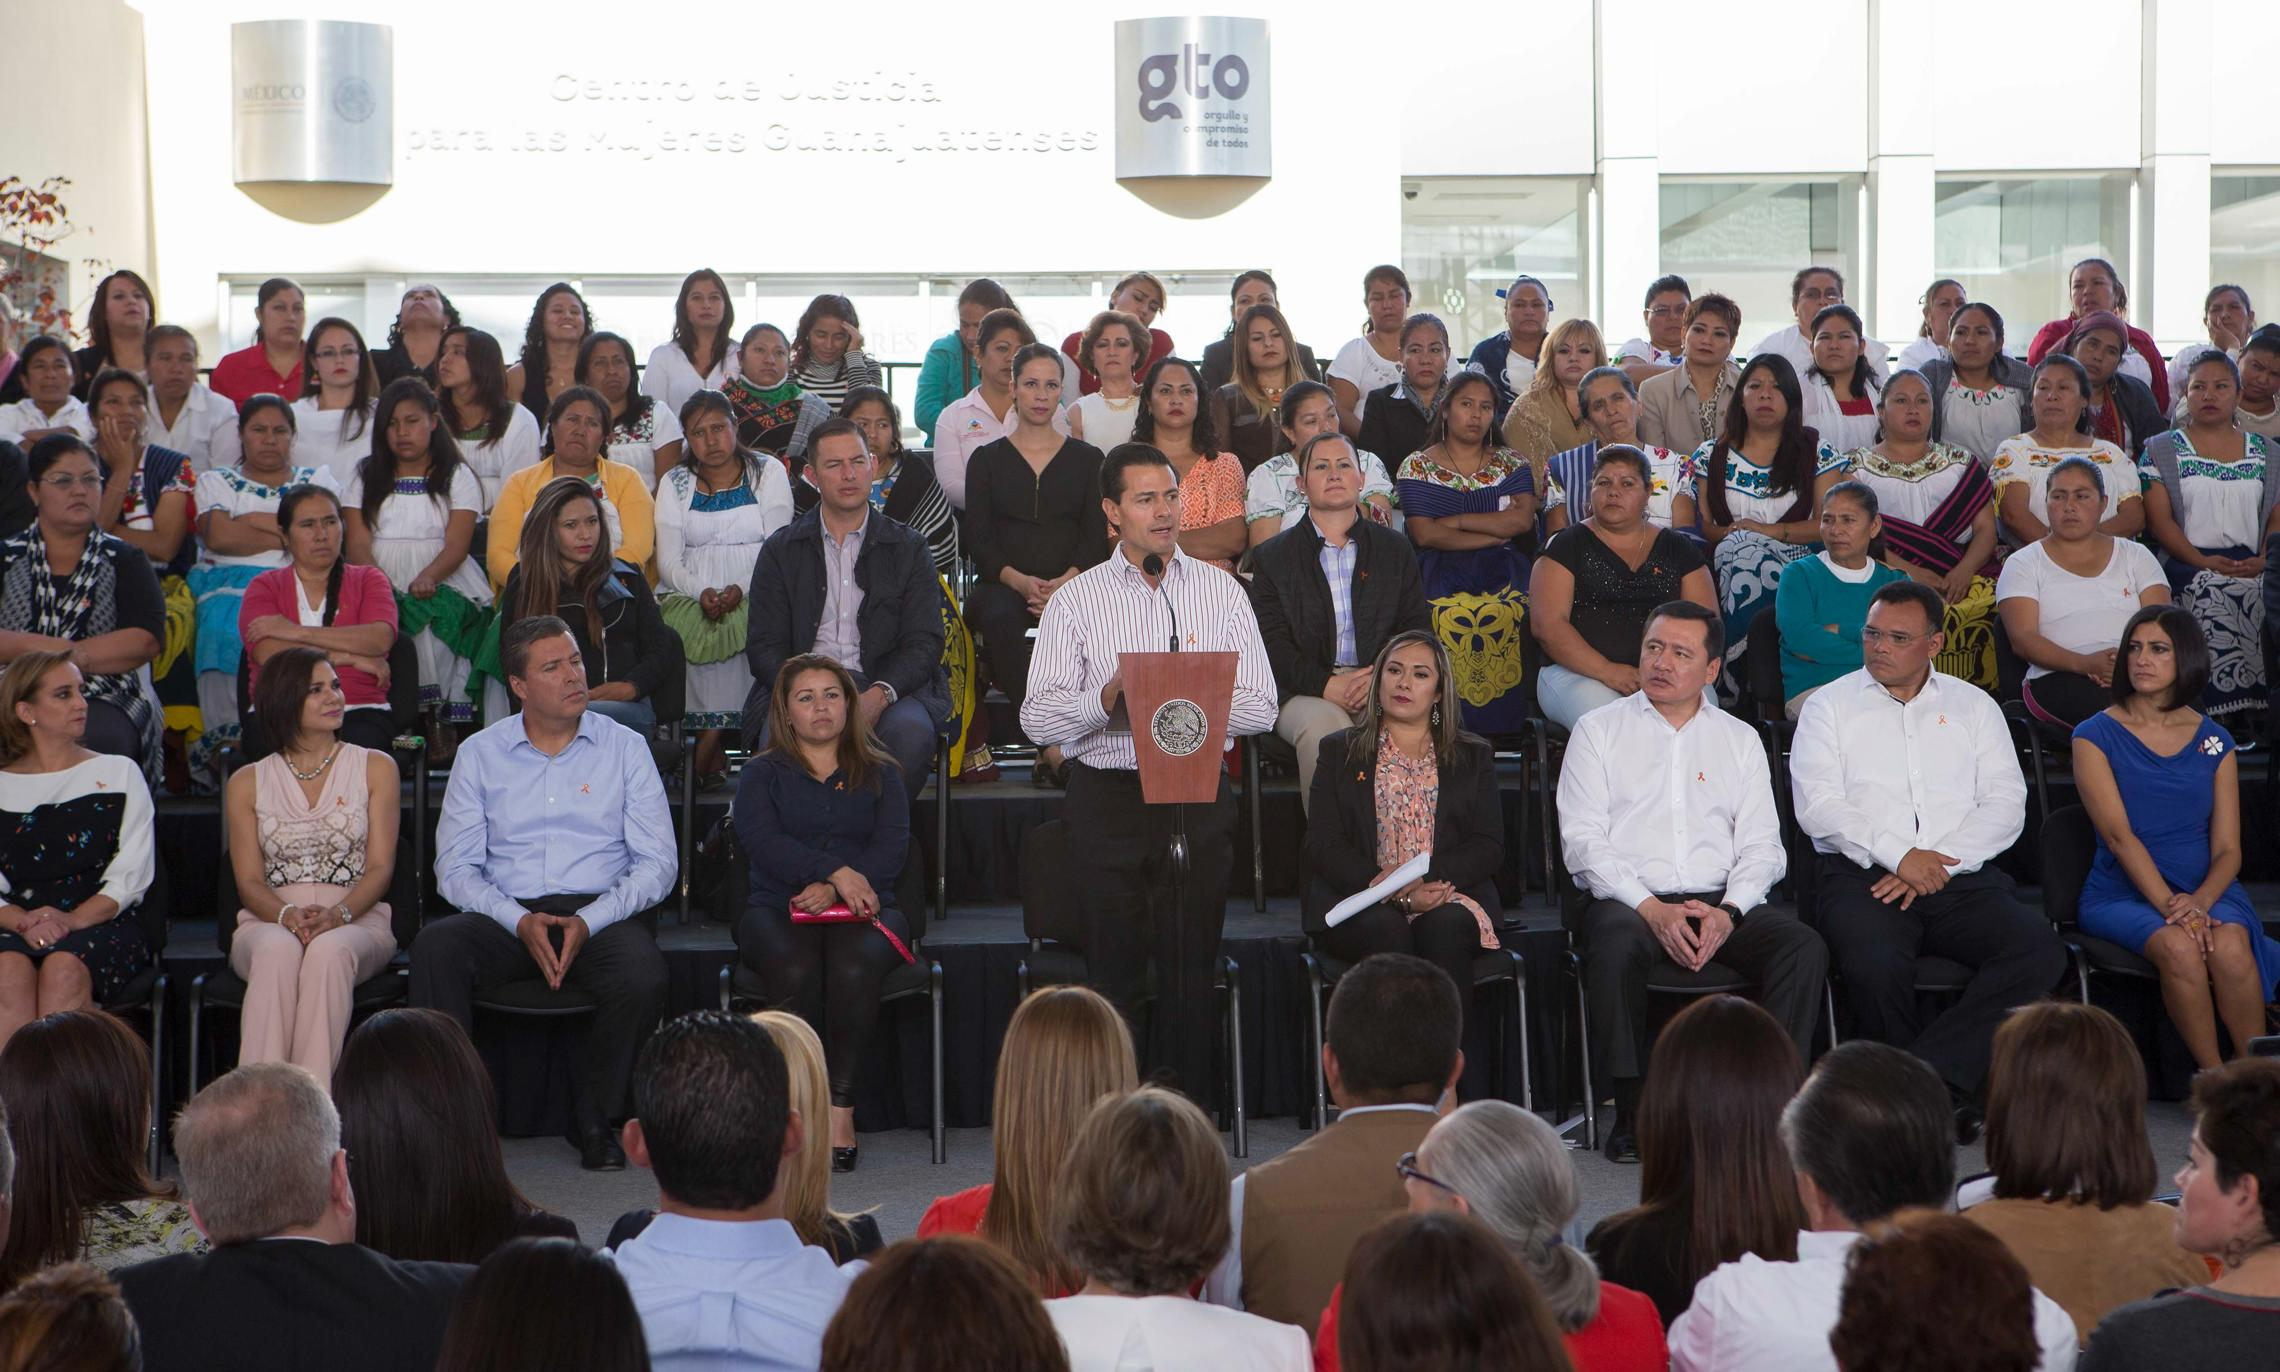 President Enrique Peña Nieto led the celebration of the International Day for the Elimination of Violence against Women.